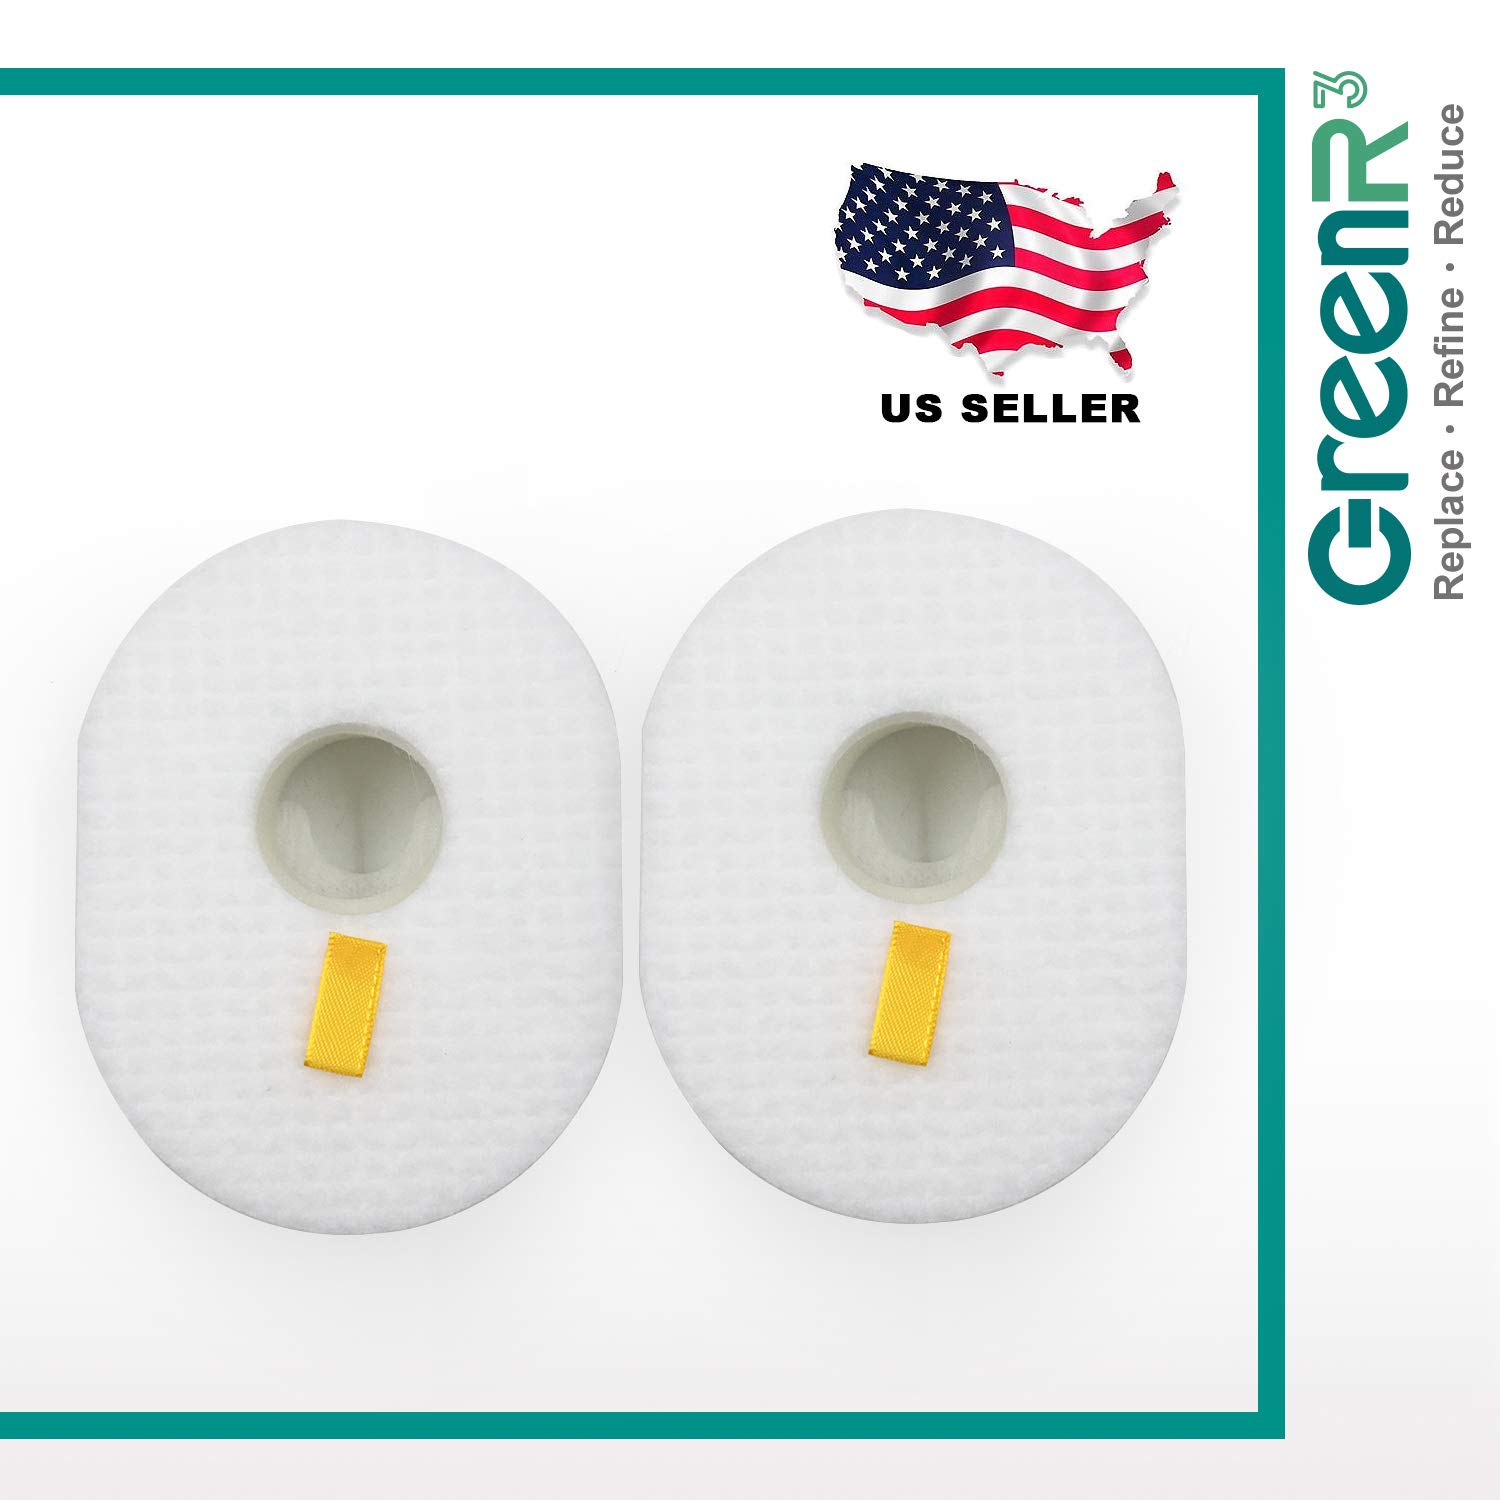 GreenR3 2-Pack Replacement Foam Air Filters for Shark XFF350 Fits Shark HV300 XFFV300 HV301 HV302 HV305 HV310 HV450 Vacuum Cleaners and More SHARK XFF350 Foam Filter